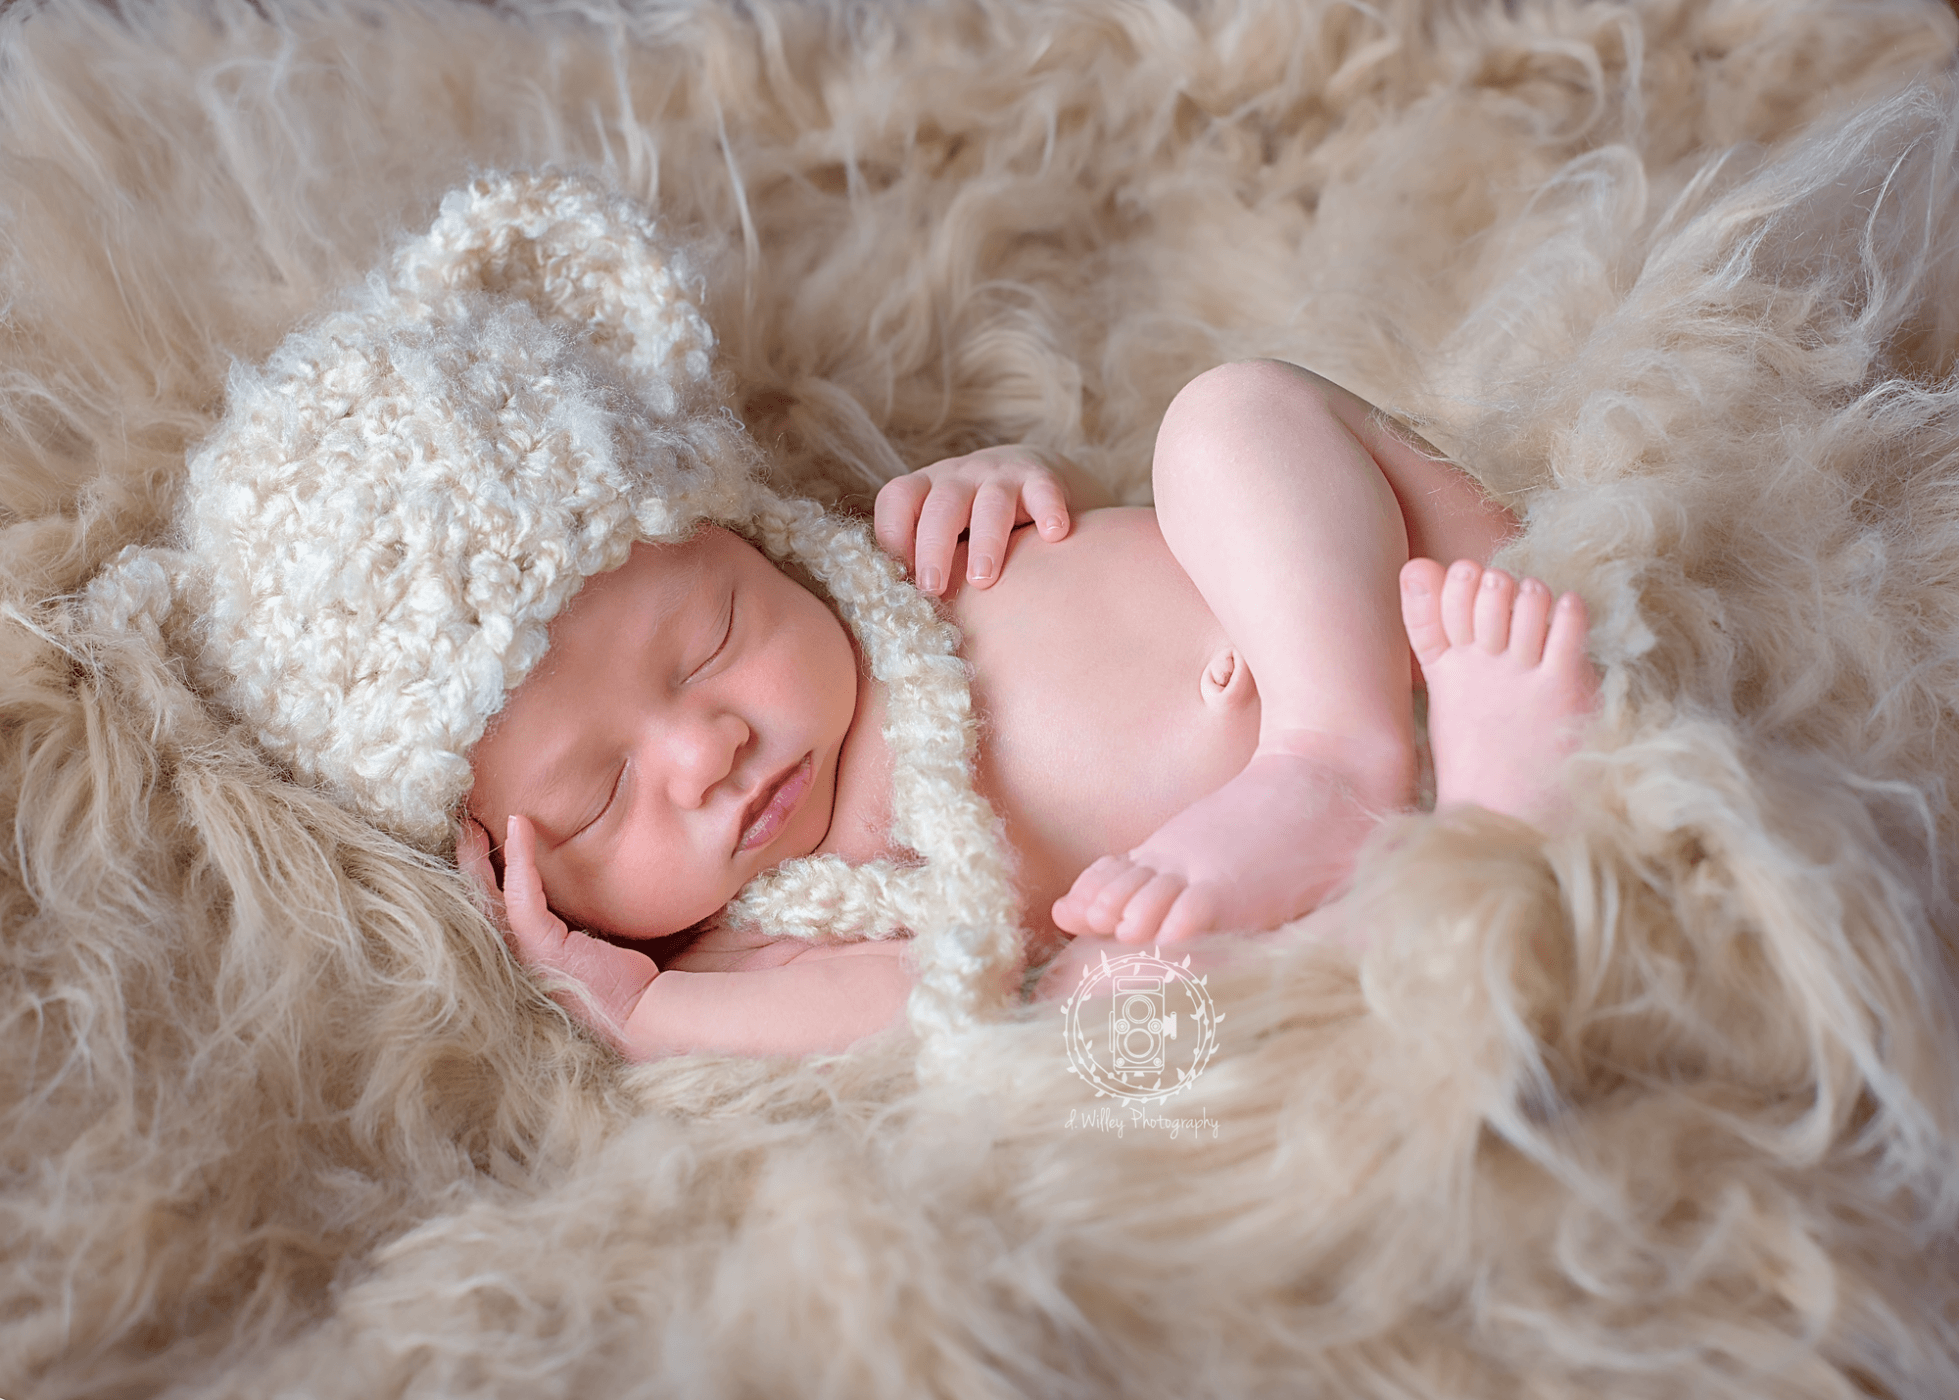 D. Willey Photography | Rifle, Colorado Newborn and Children's Photographer